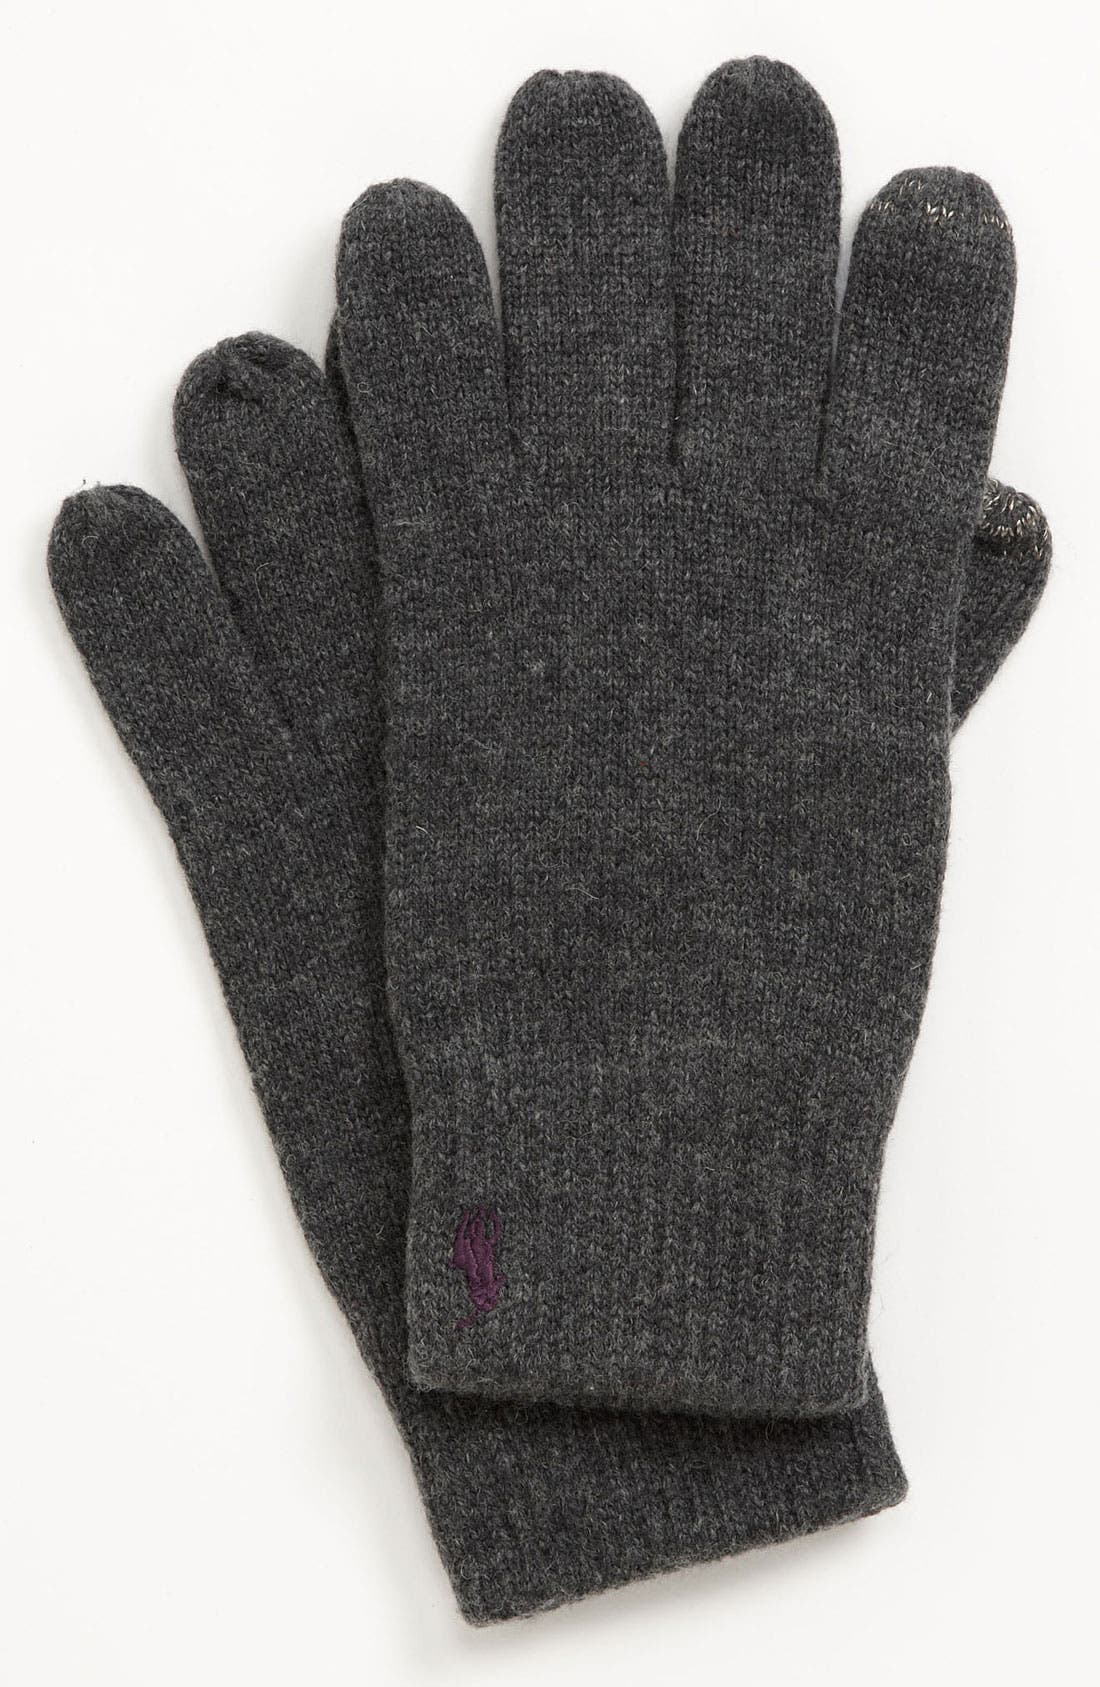 Alternate Image 1 Selected - Polo Ralph Lauren Cotton Blend Gloves